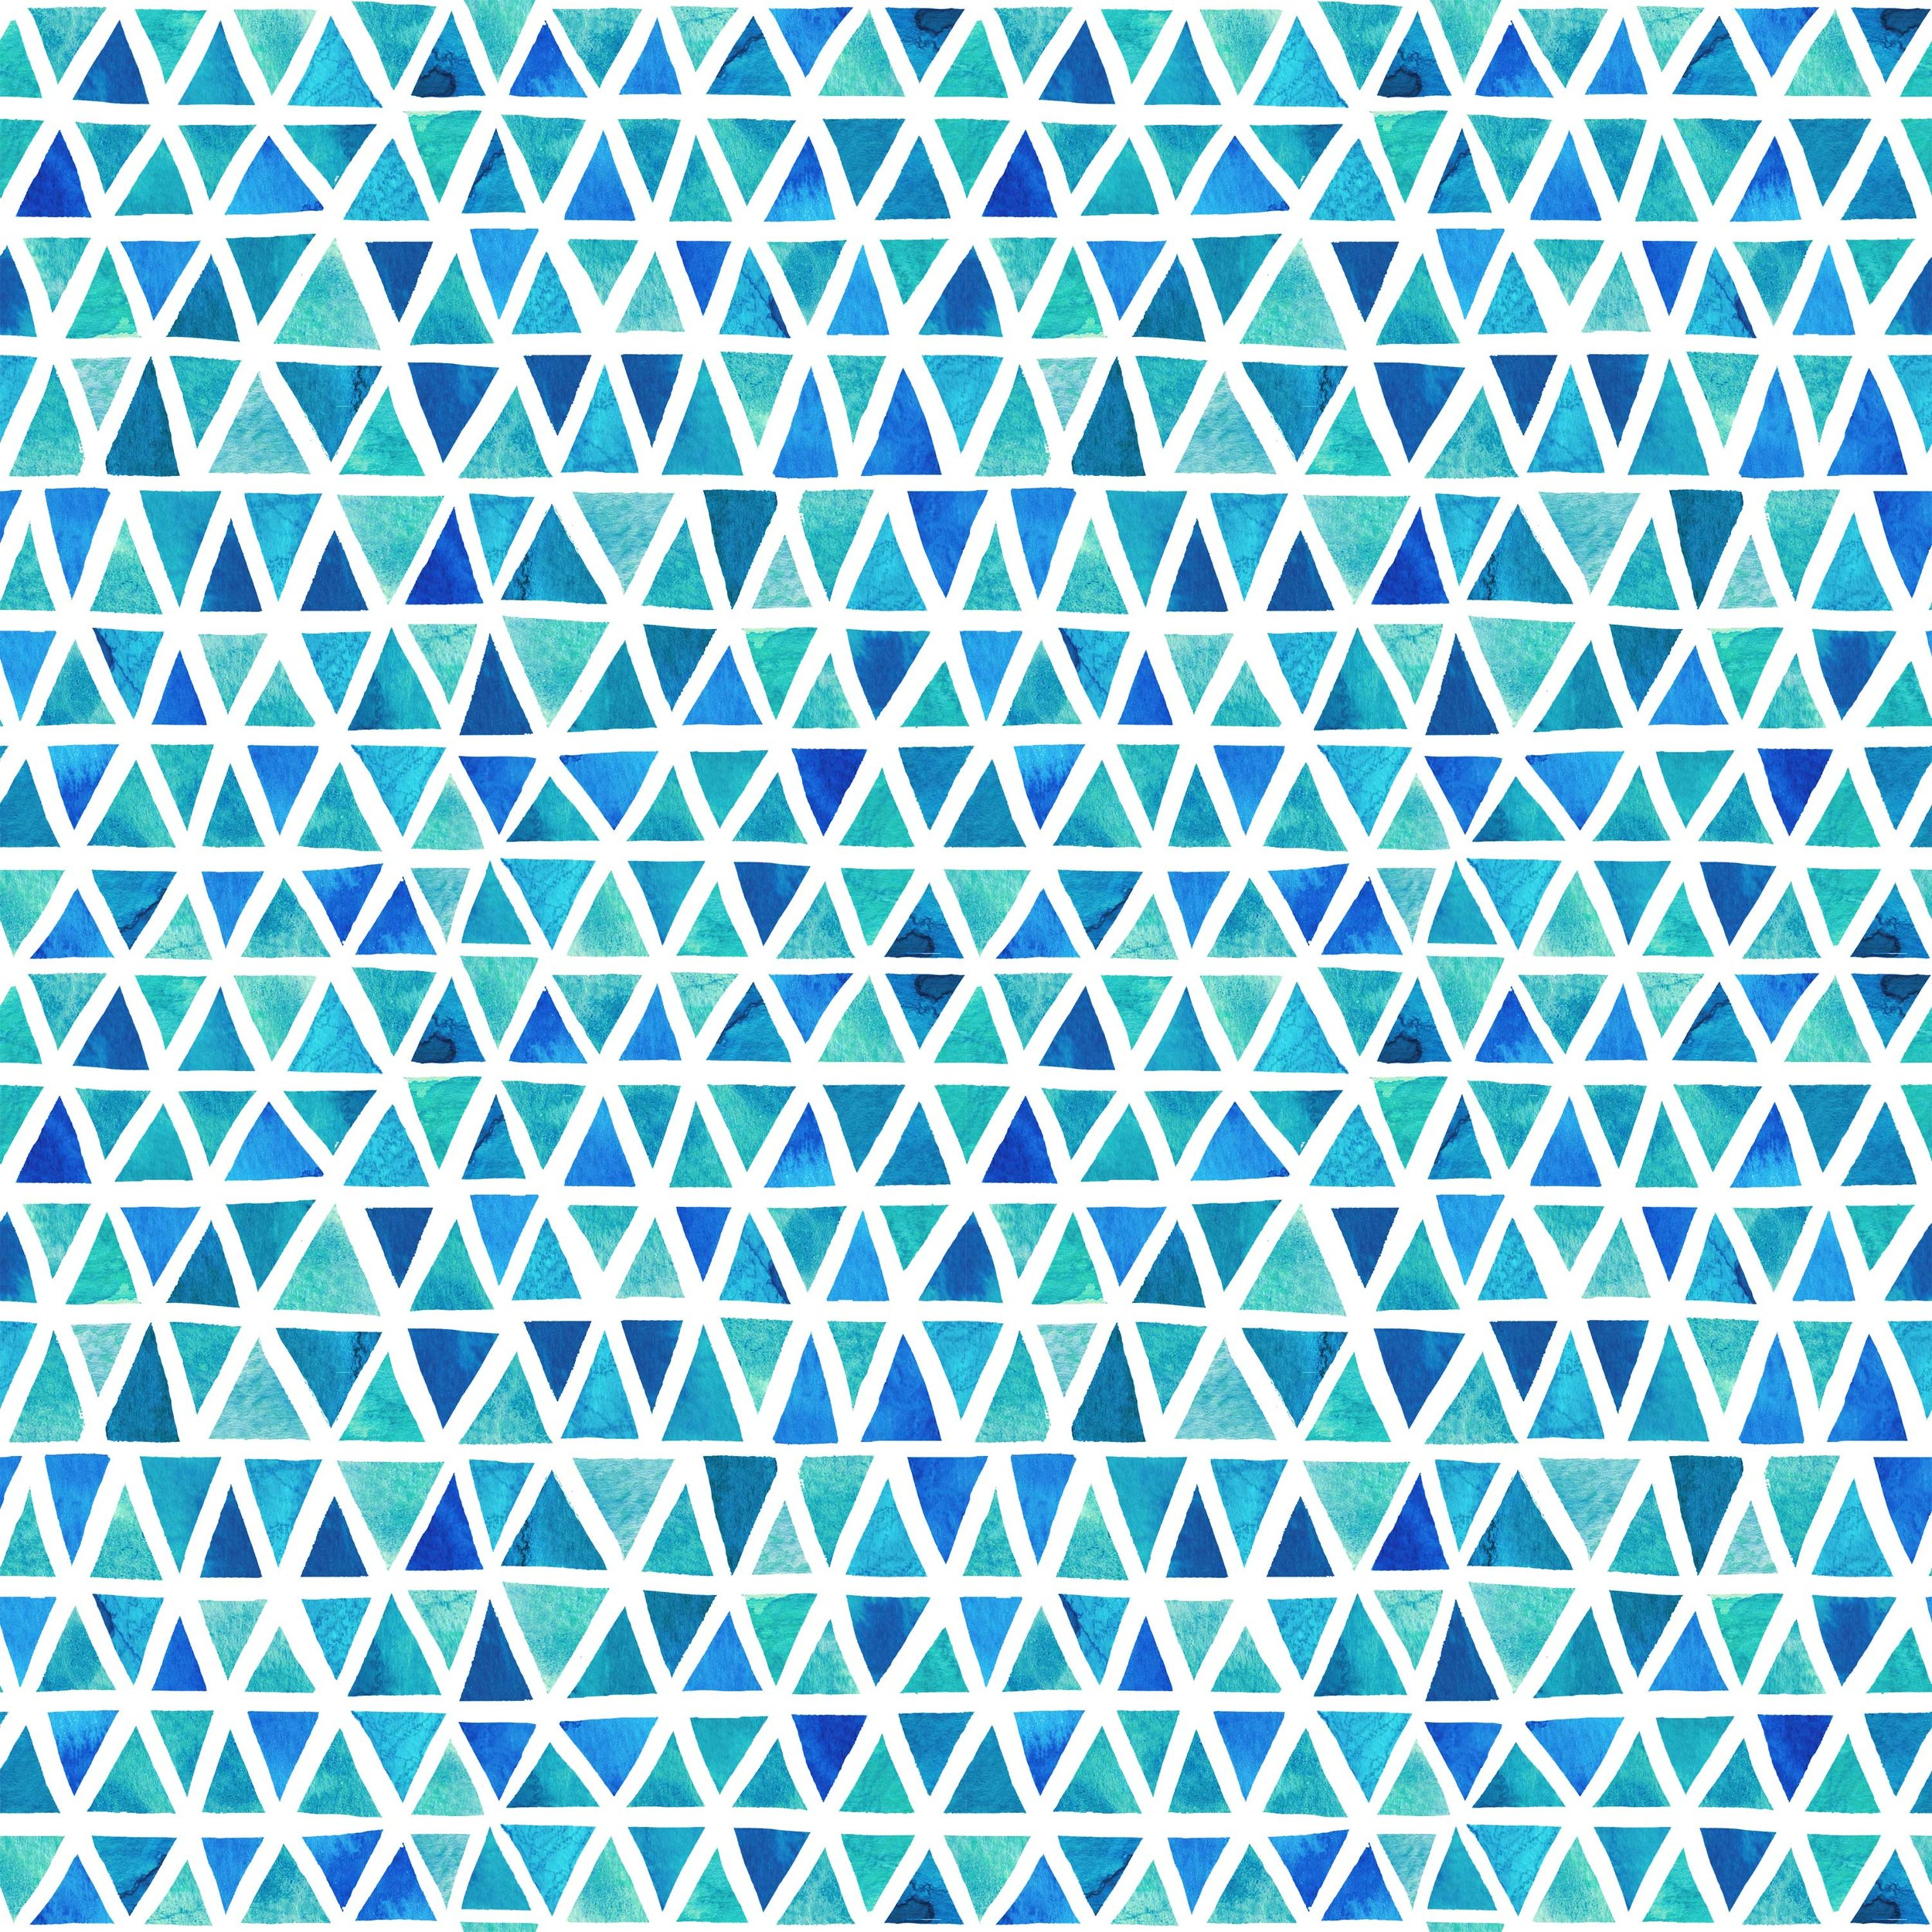 triangle-pattern-blues-Lang.jpg